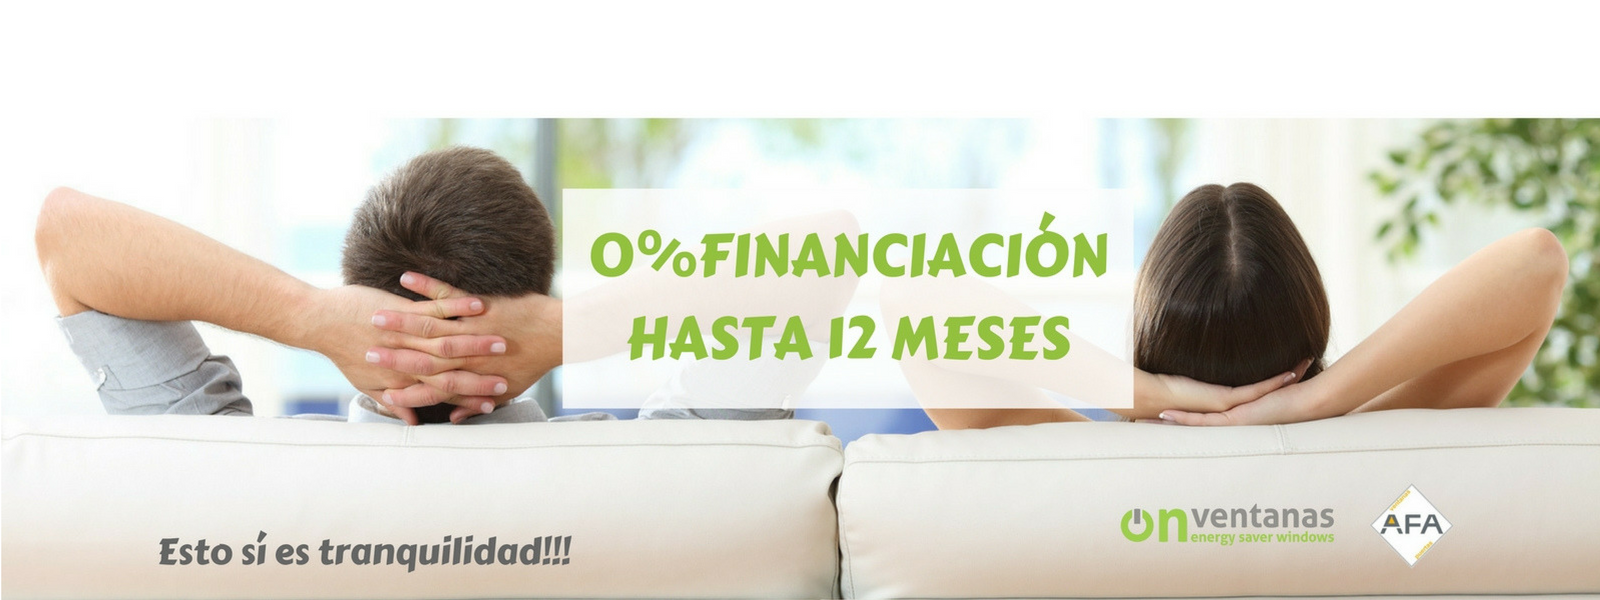 0% FINANCIACIÓN